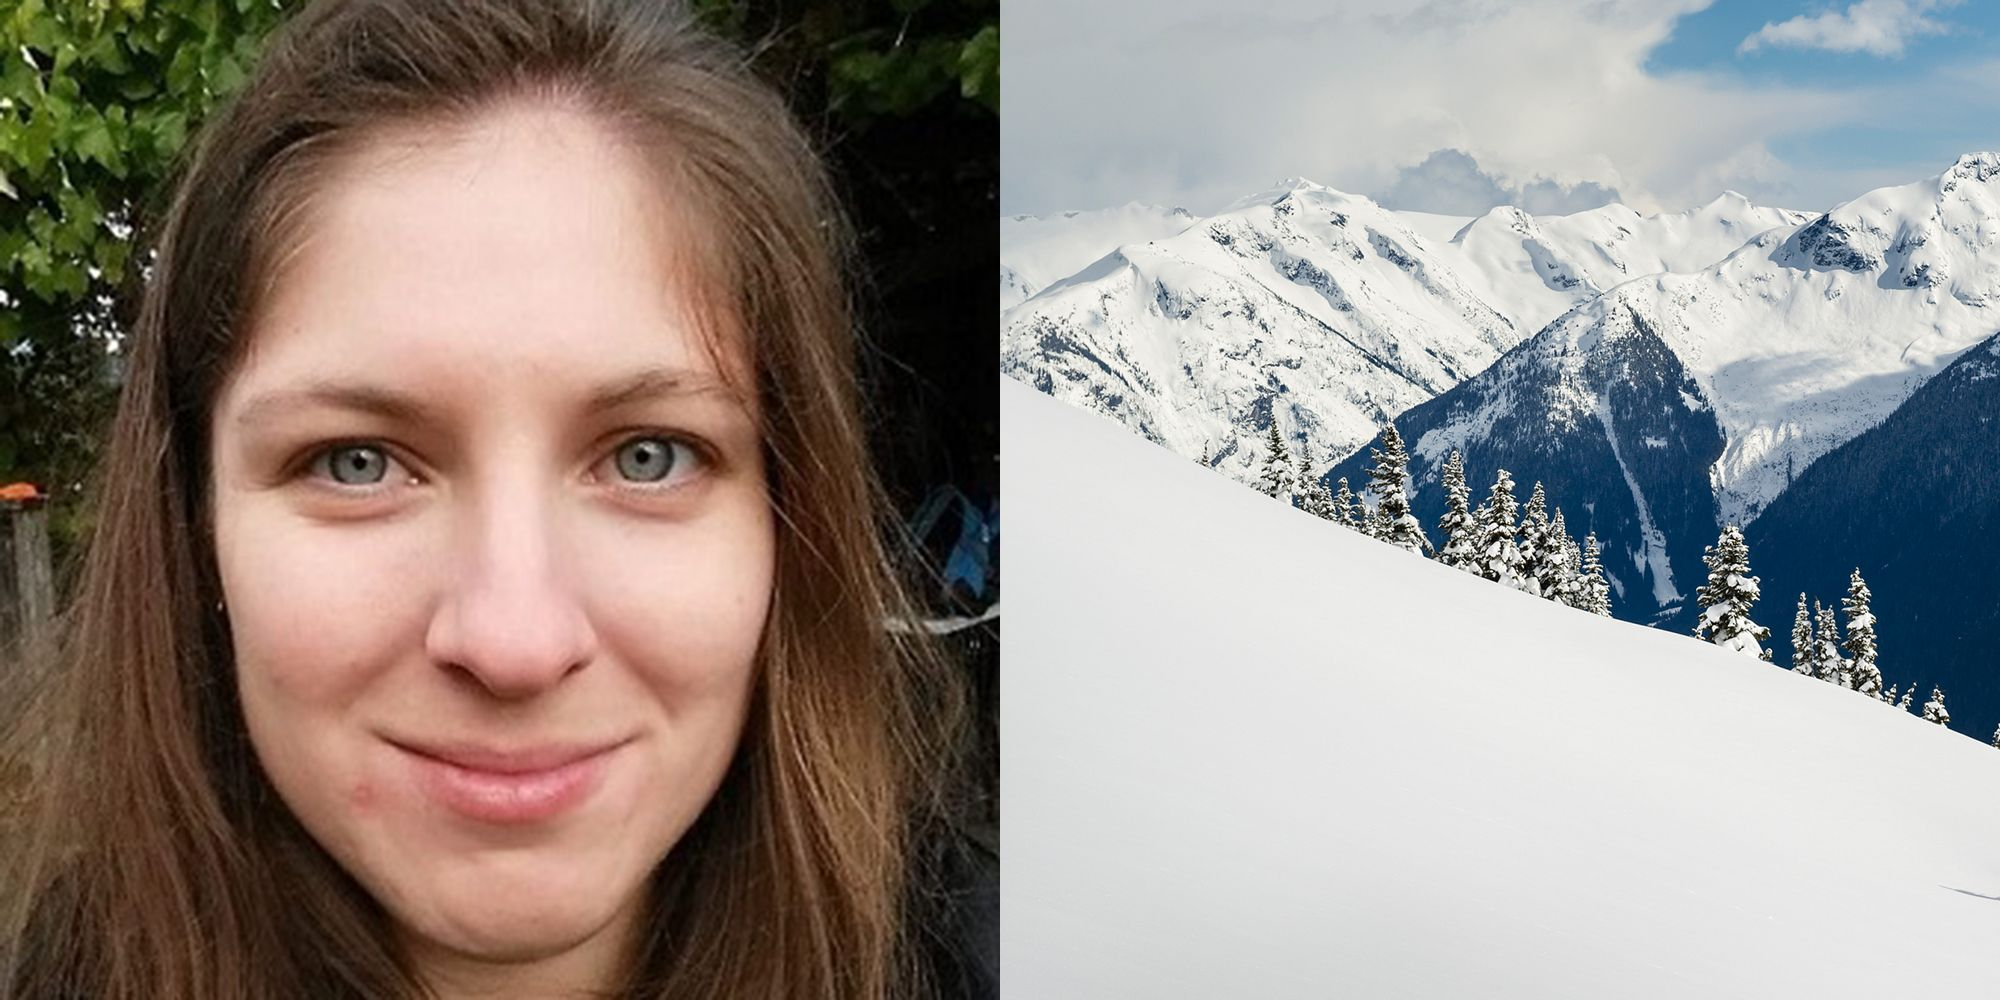 Desperate last texts sent by missing ski resort worker reveal she was 'lost'